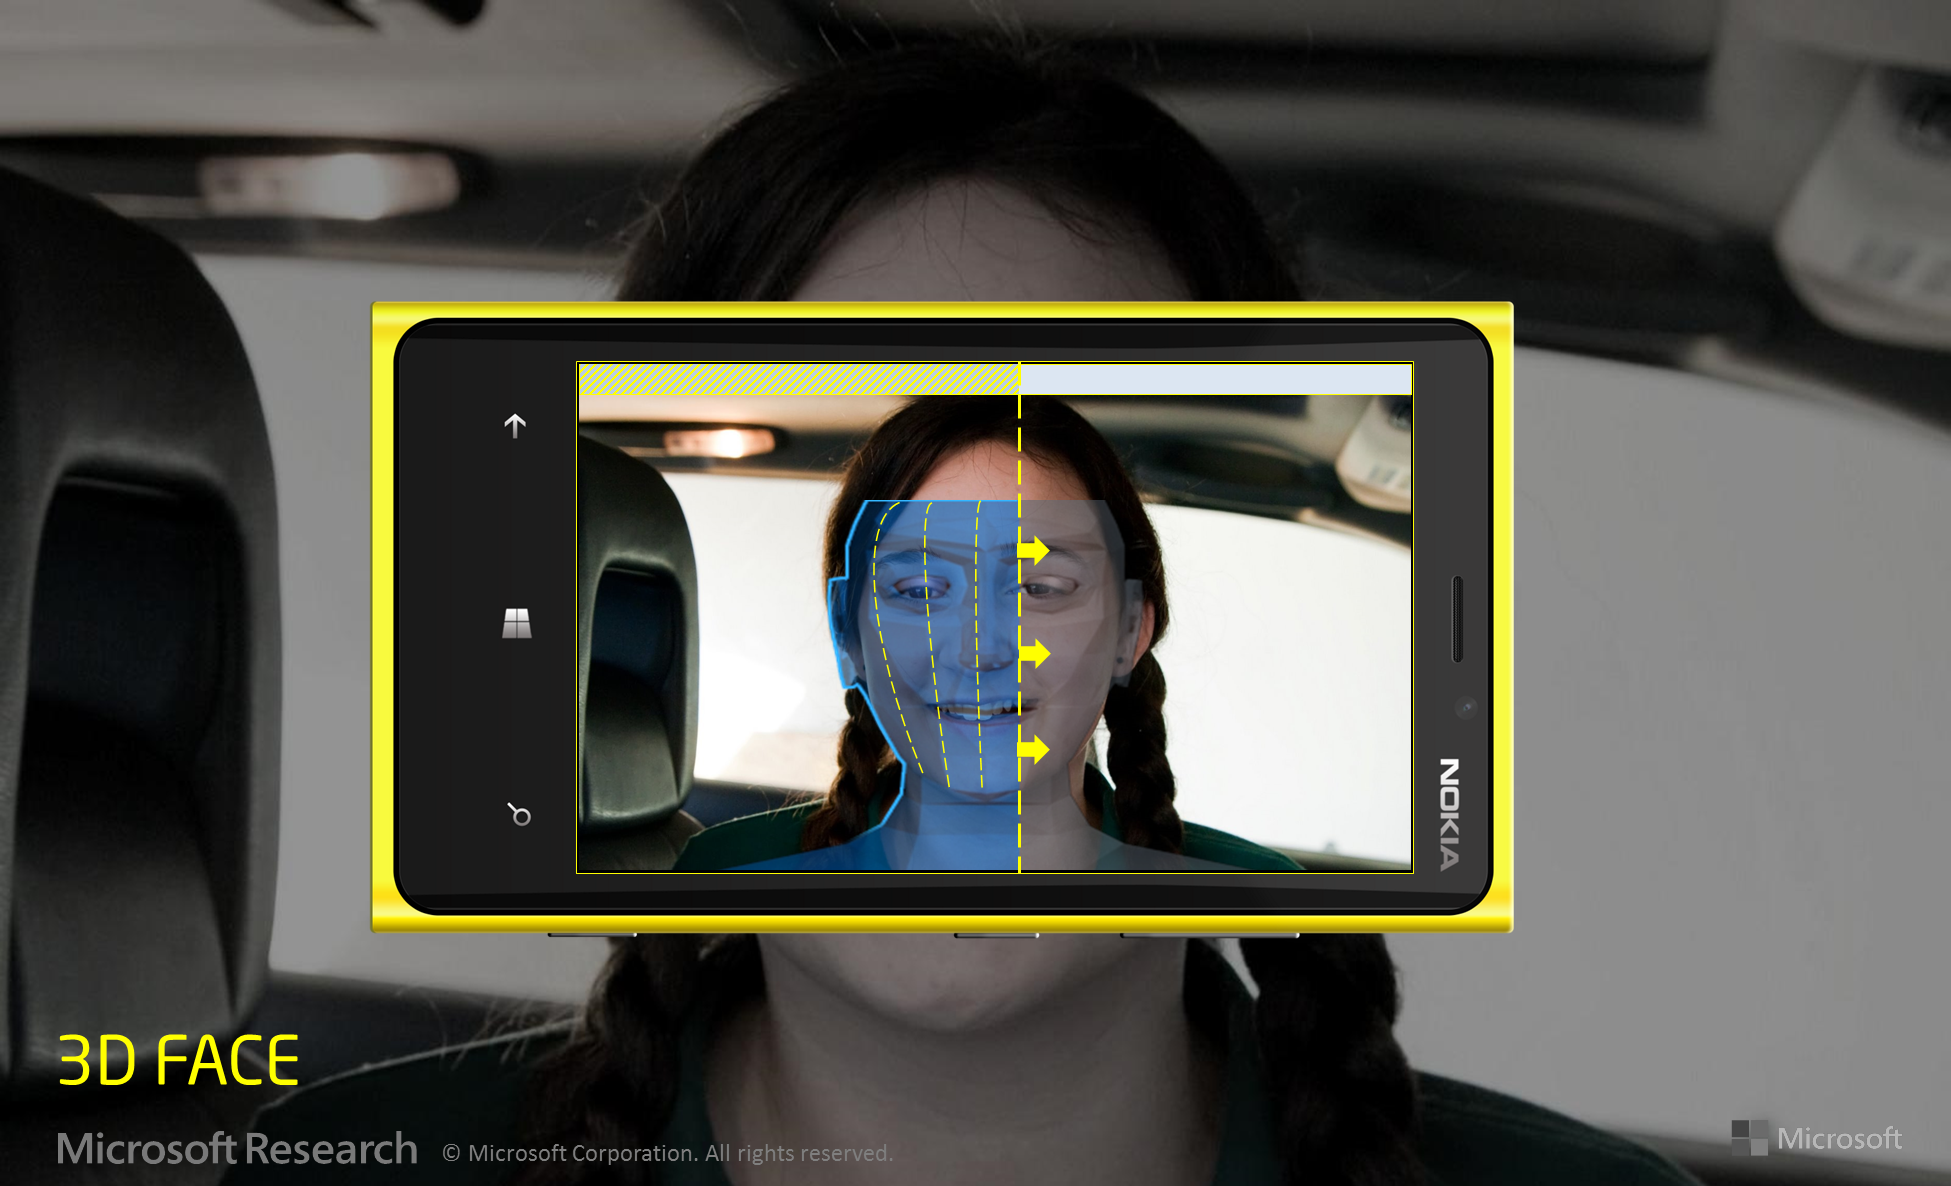 Windows Mobile 3D Face Scanner APP | Research (1/1